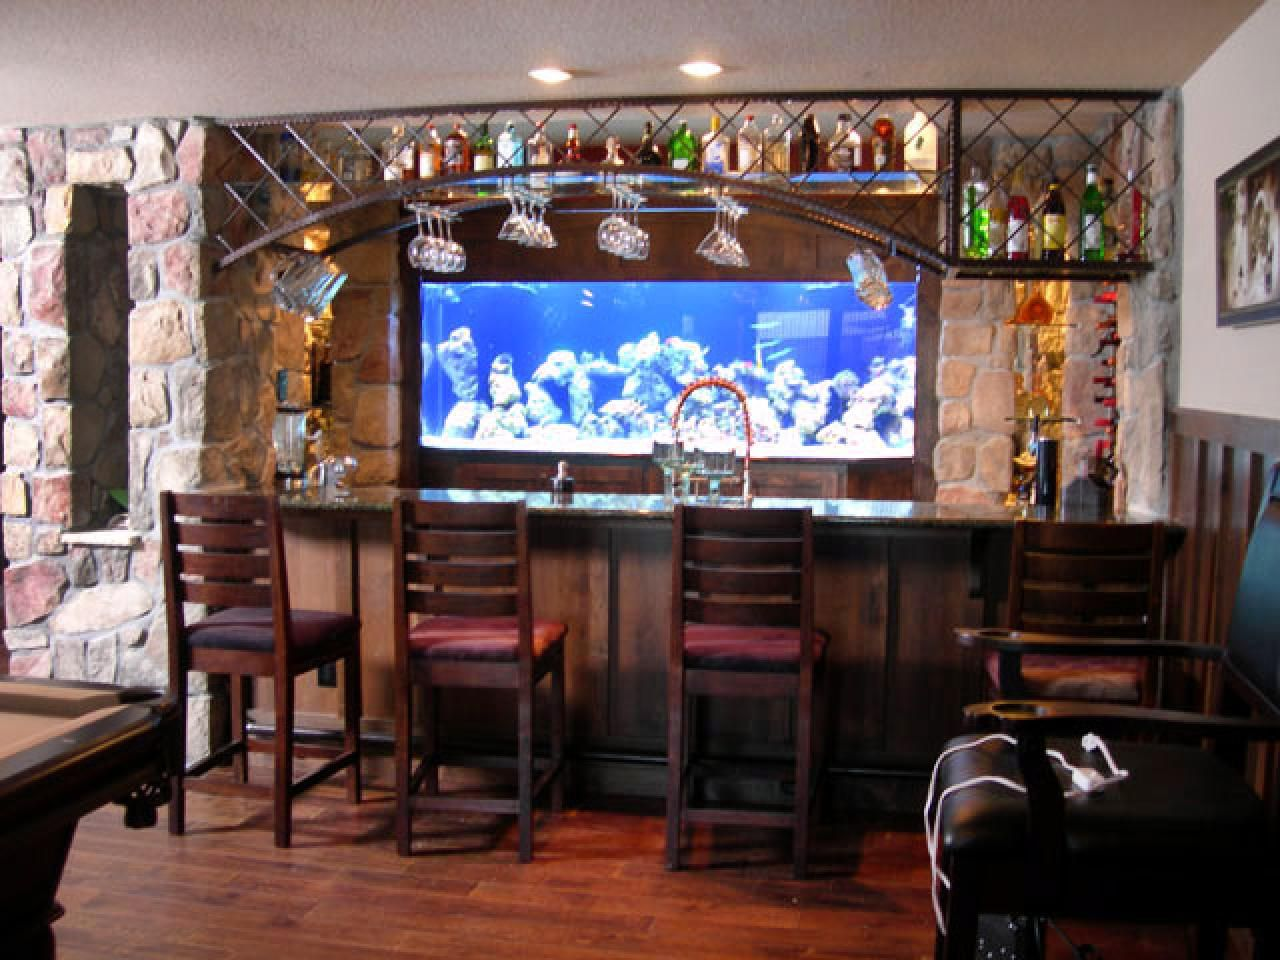 Home Bar Ideas 89 Design Options Hgtv Kitchen Design And Layouts